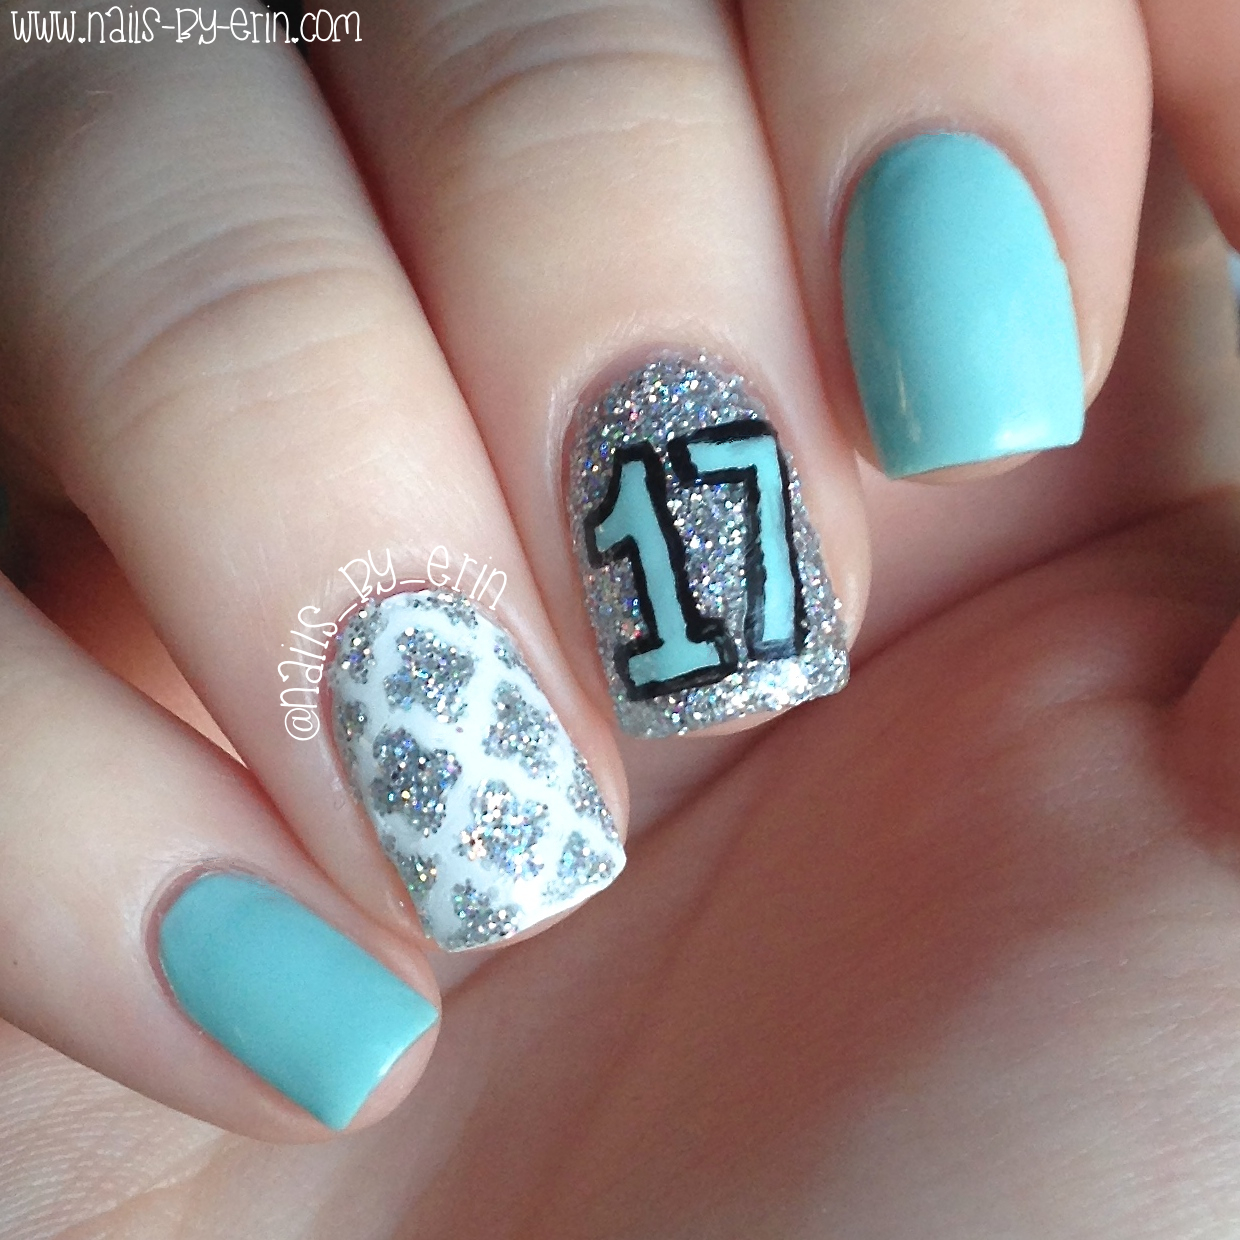 NailsByErin: My 17th Birthday Nails